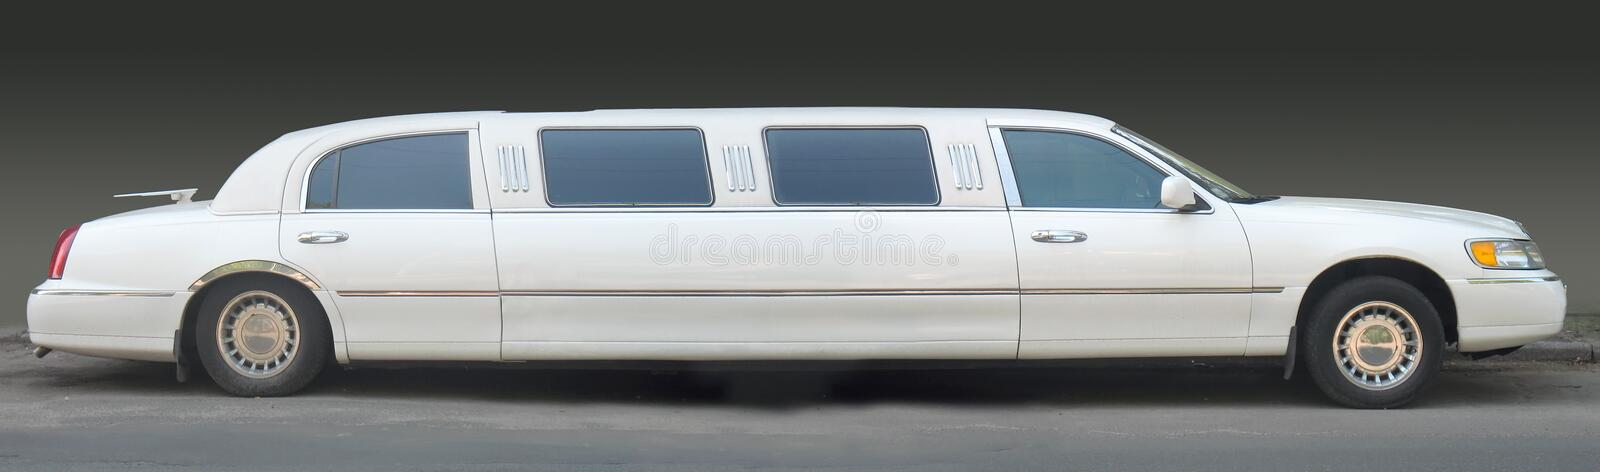 Limousine blanche image stock